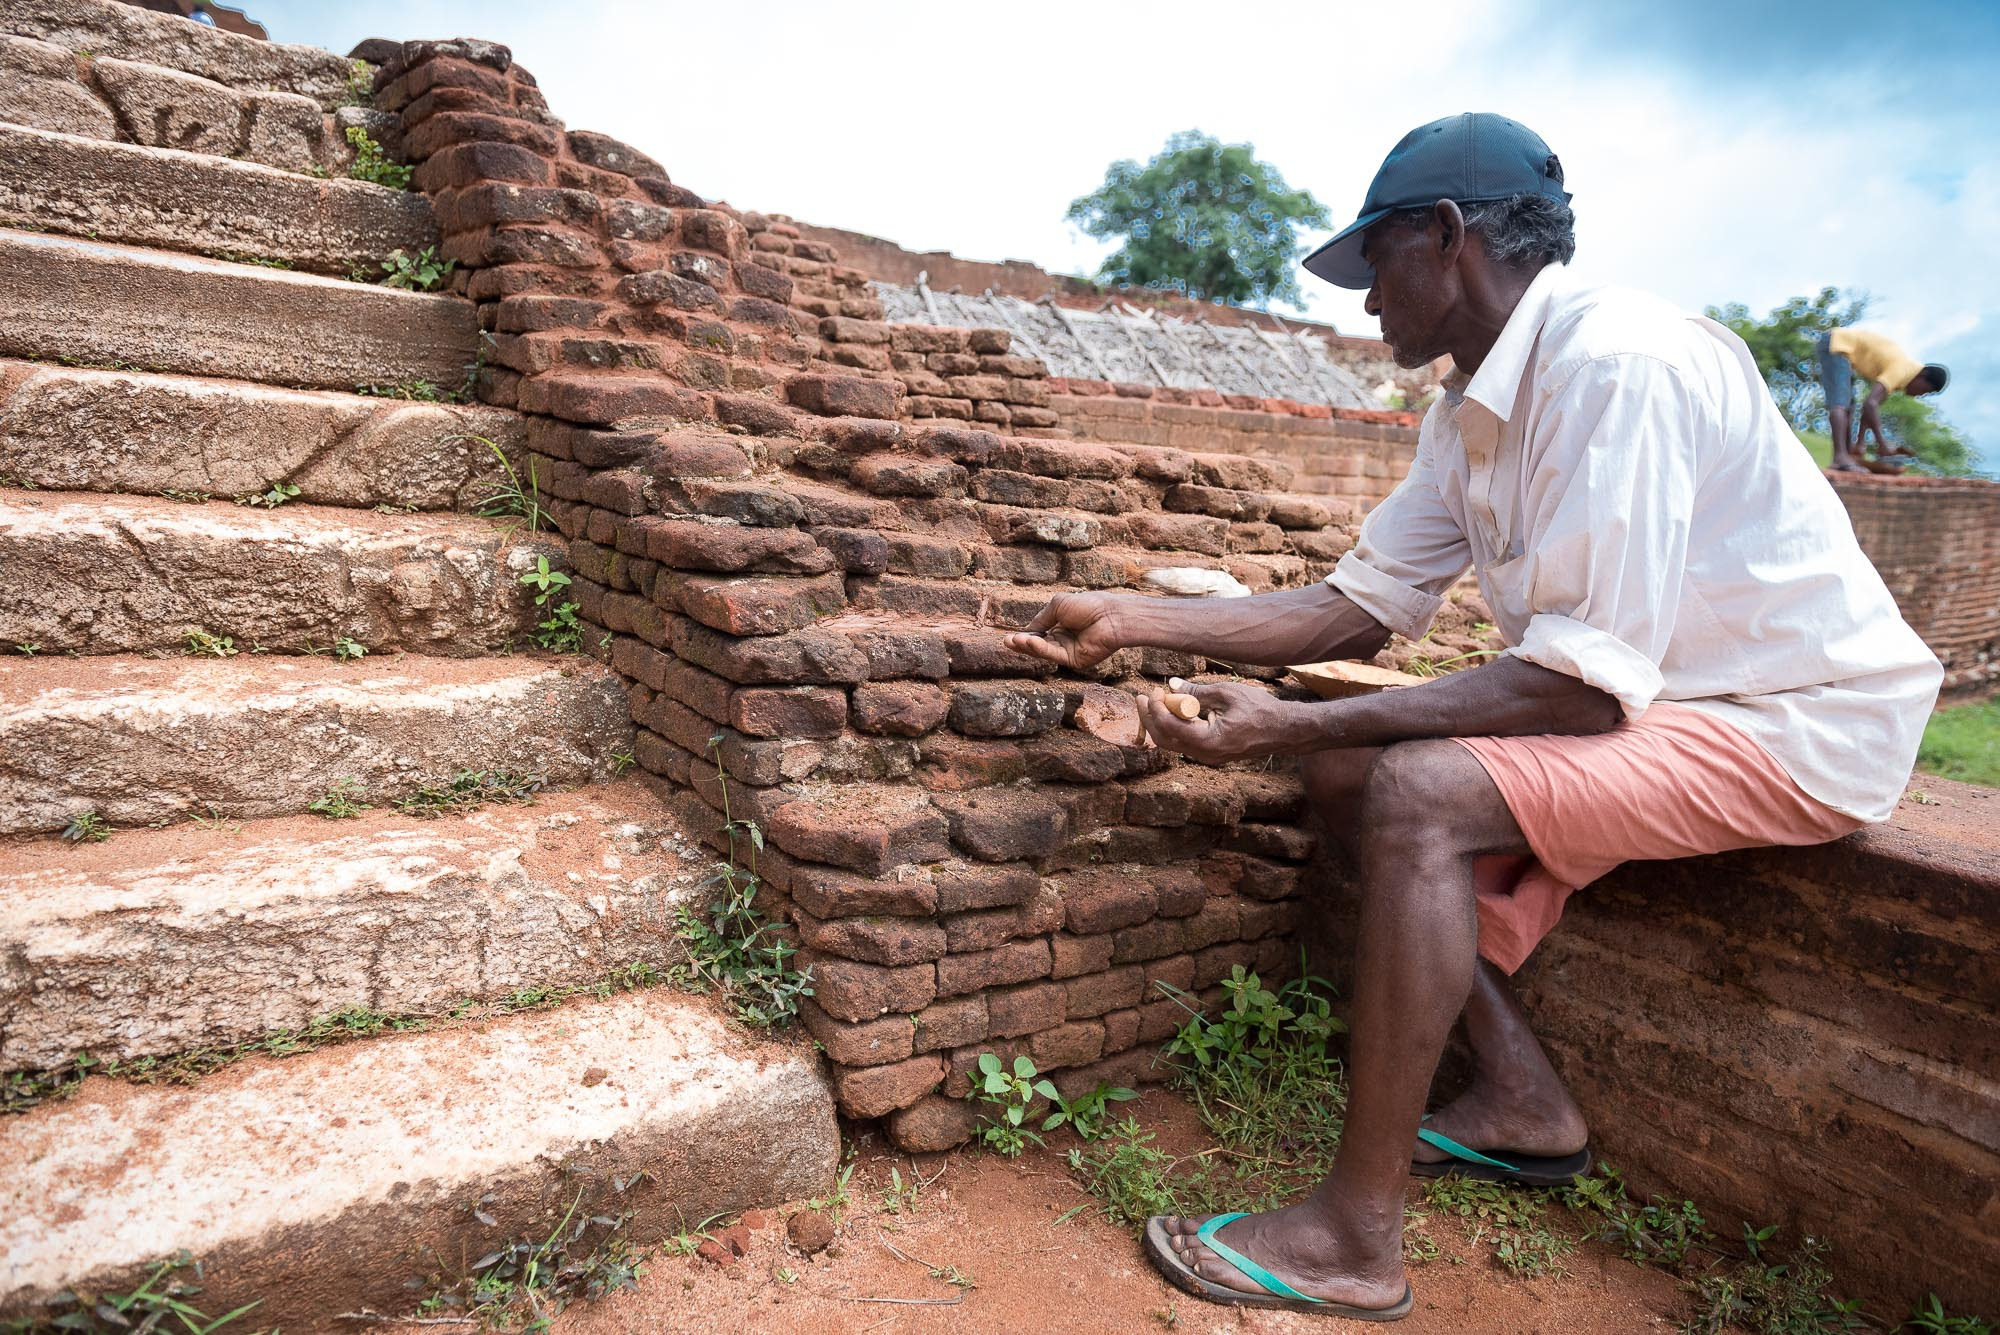 Maintenance worker, Sigiriya